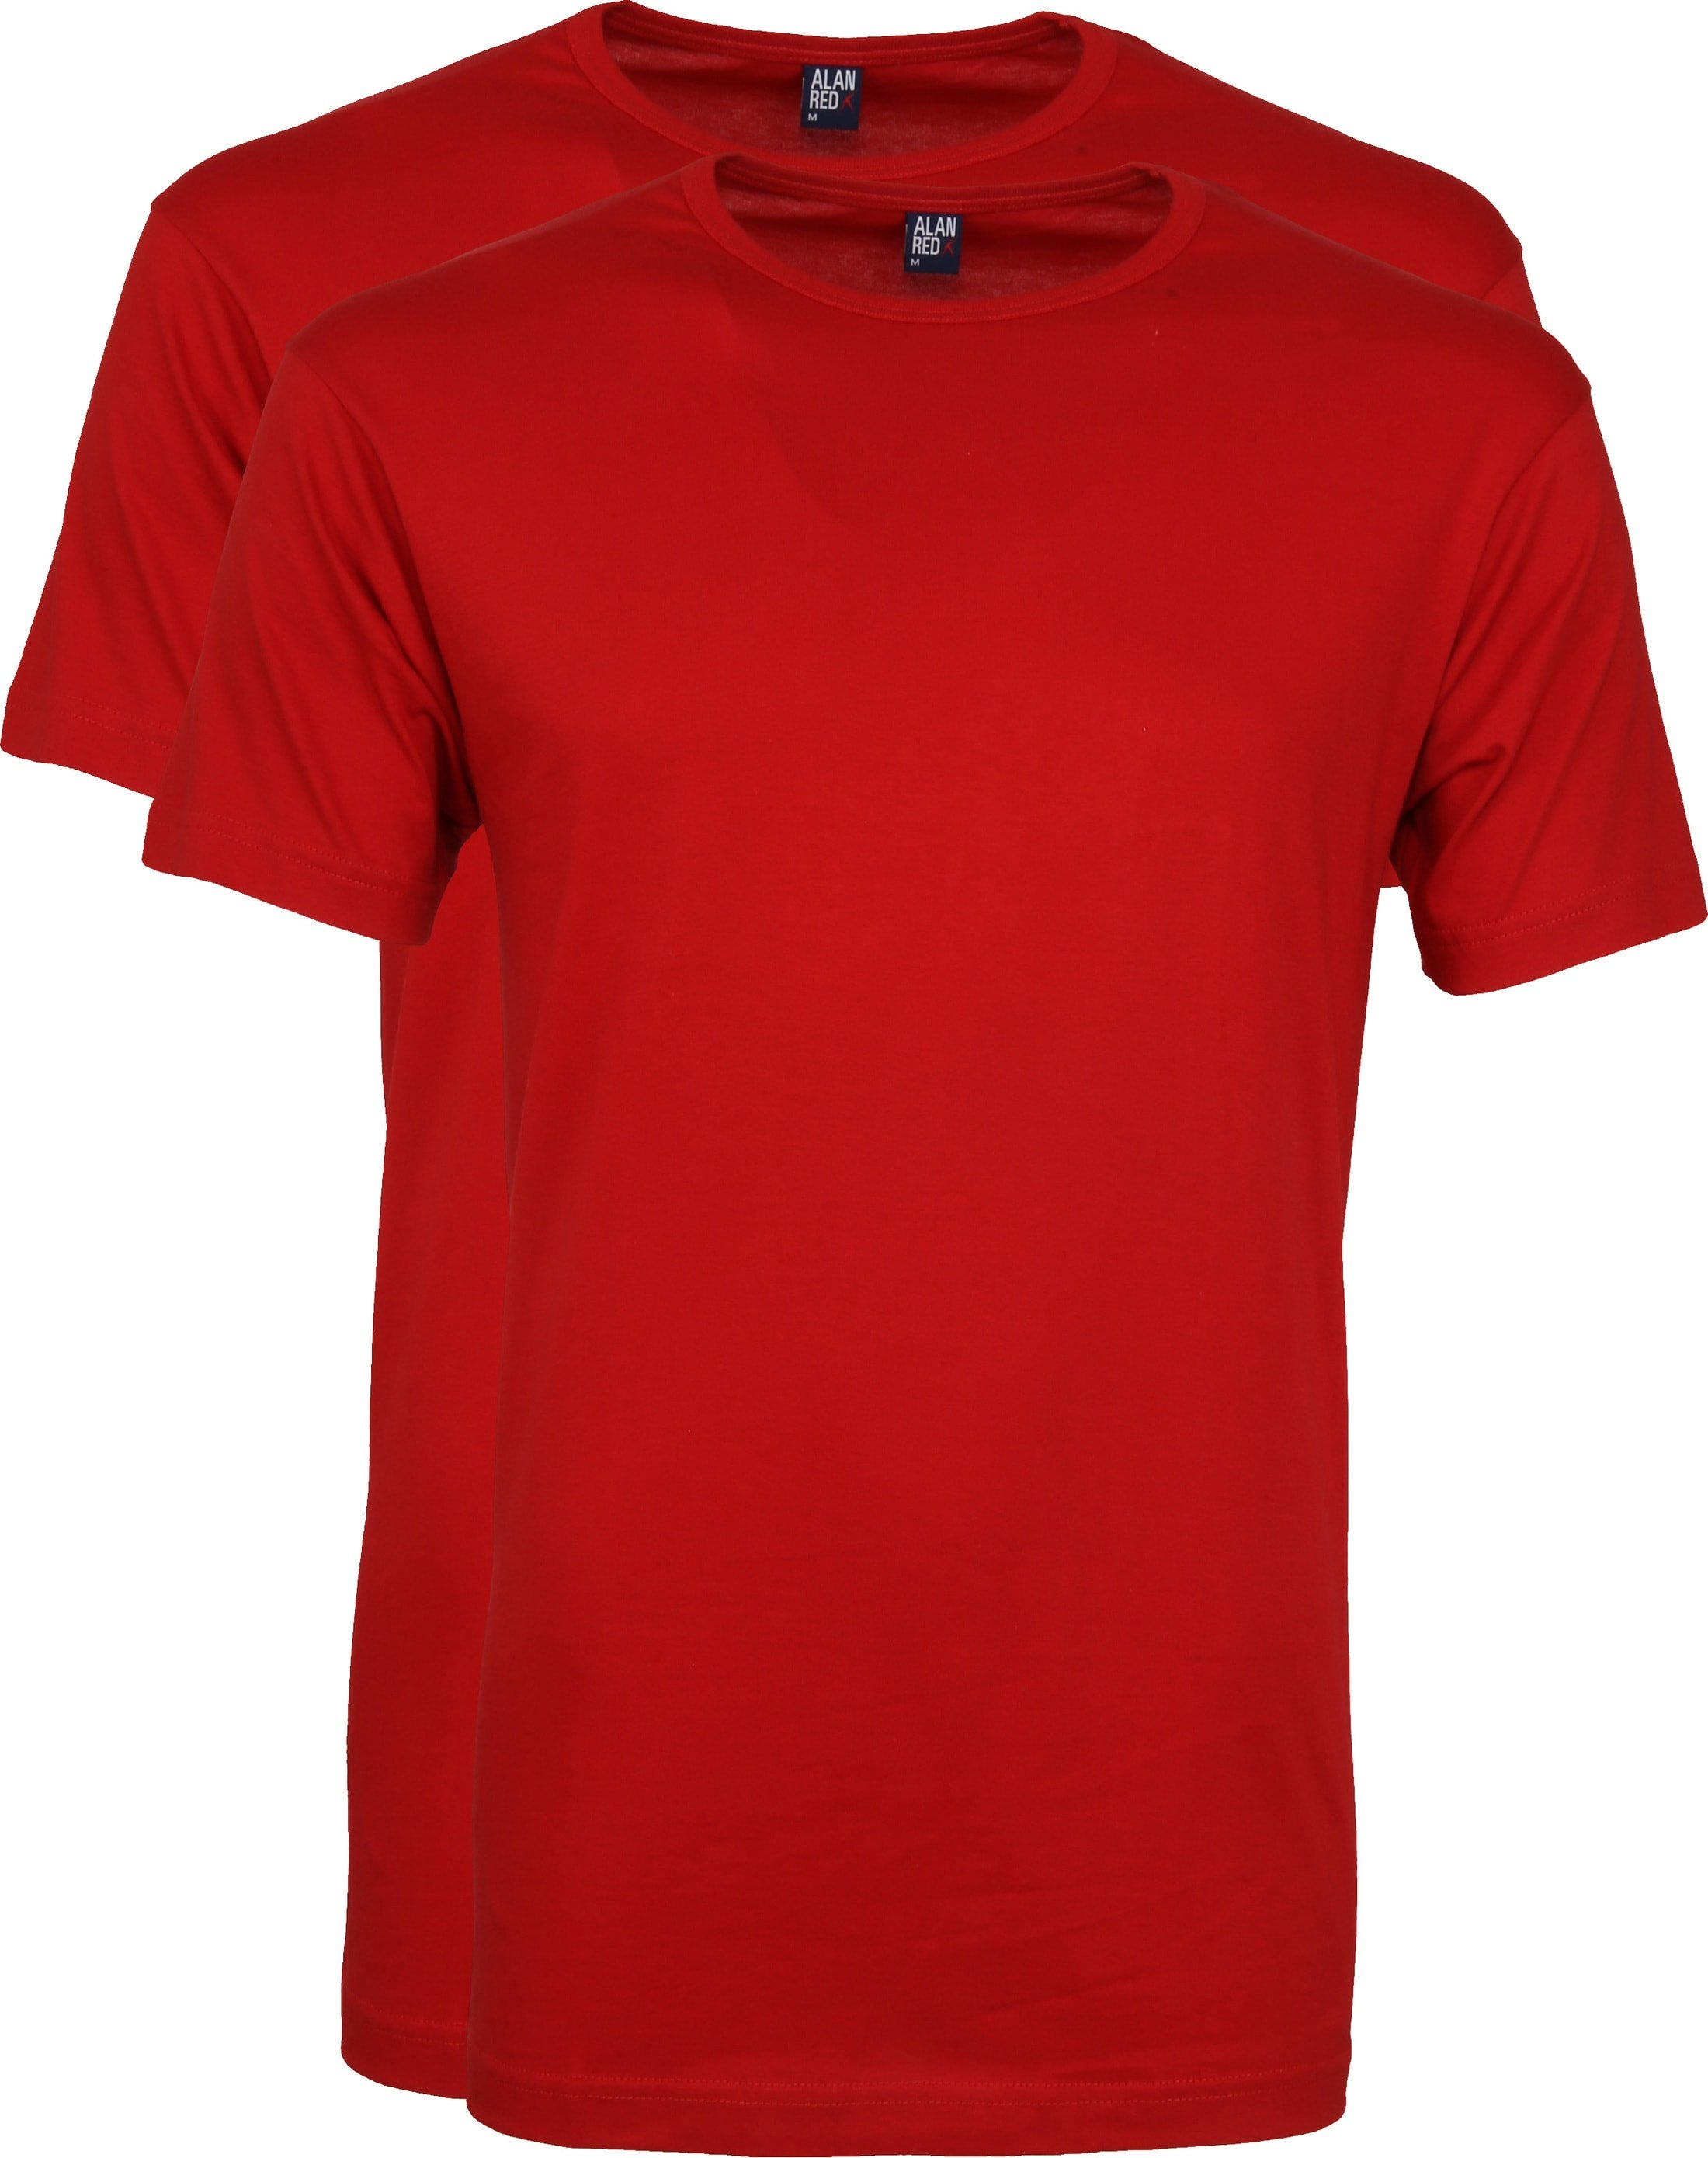 Alan Red Derby O-Hals T-Shirt Stone Red (2Pack) foto 0